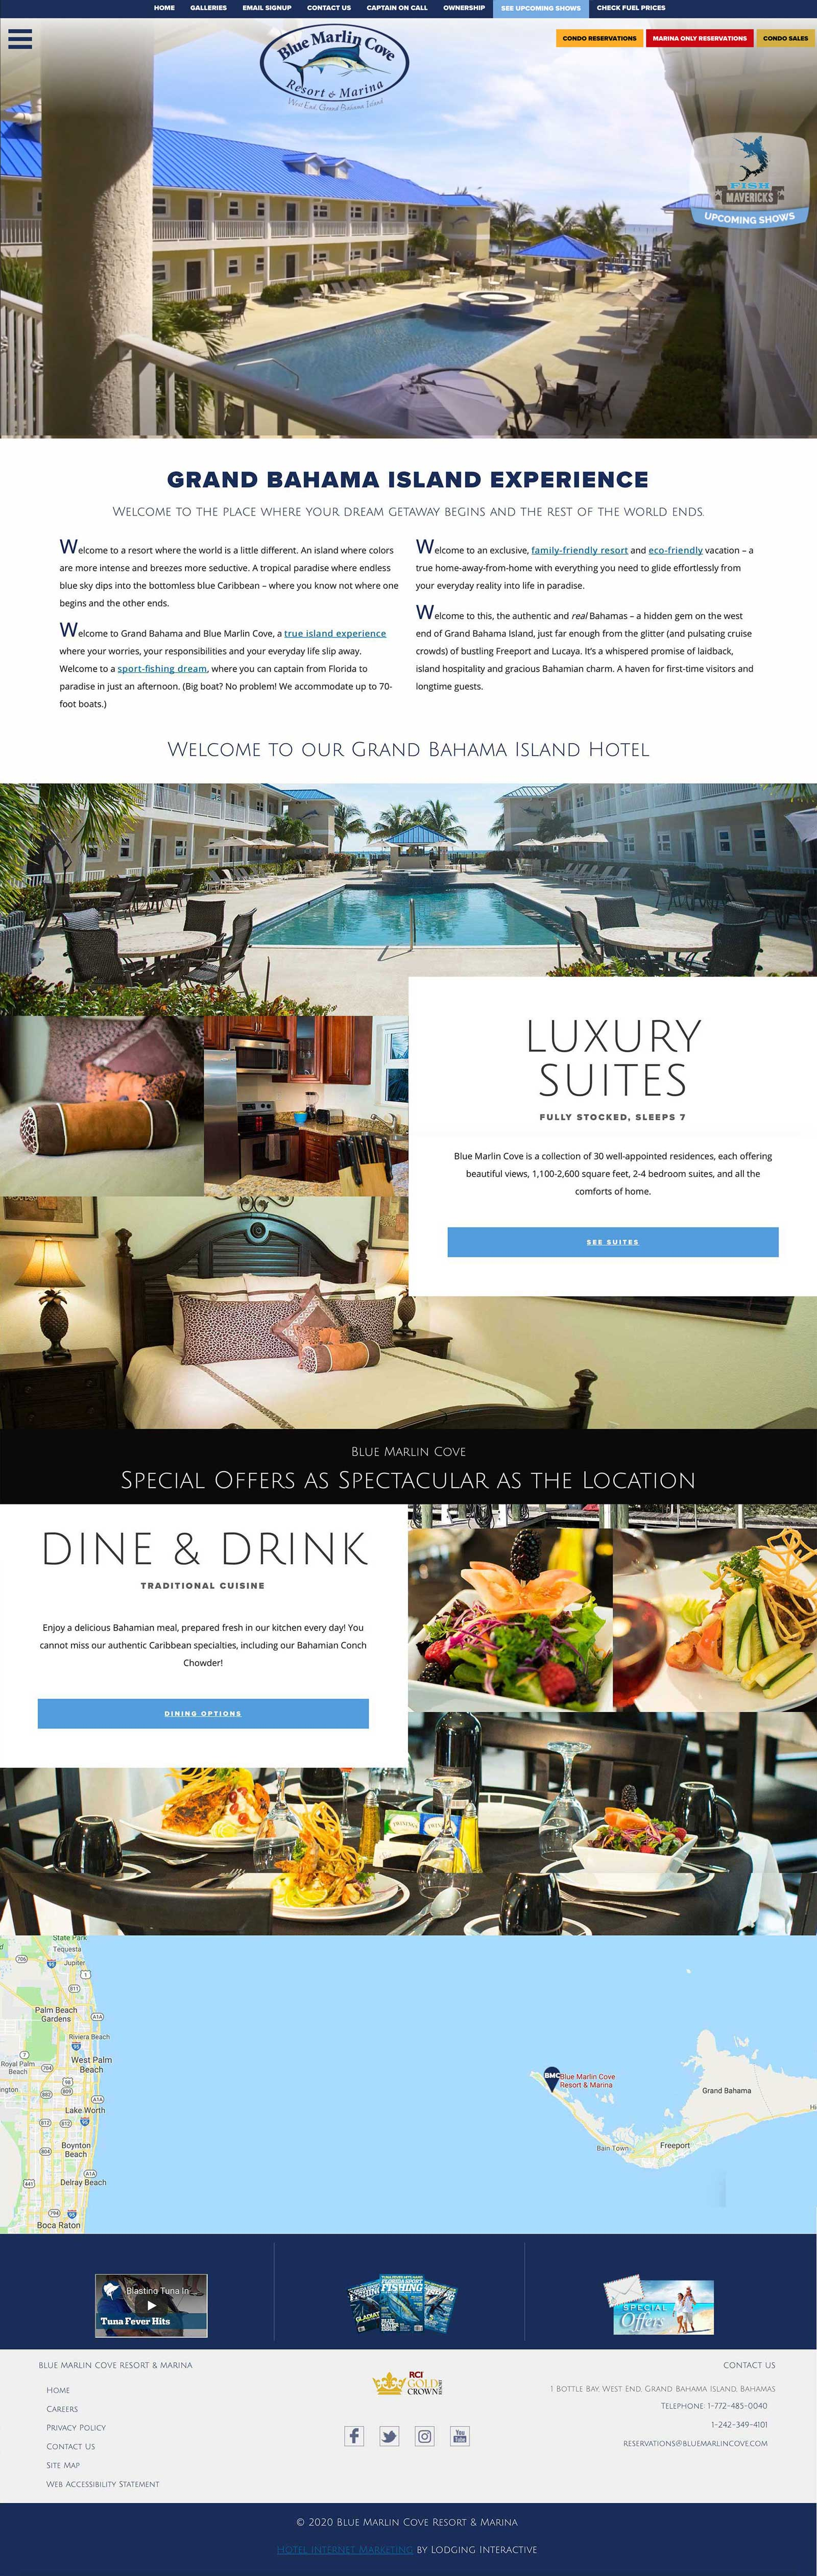 Blue Marlin Cove homepage